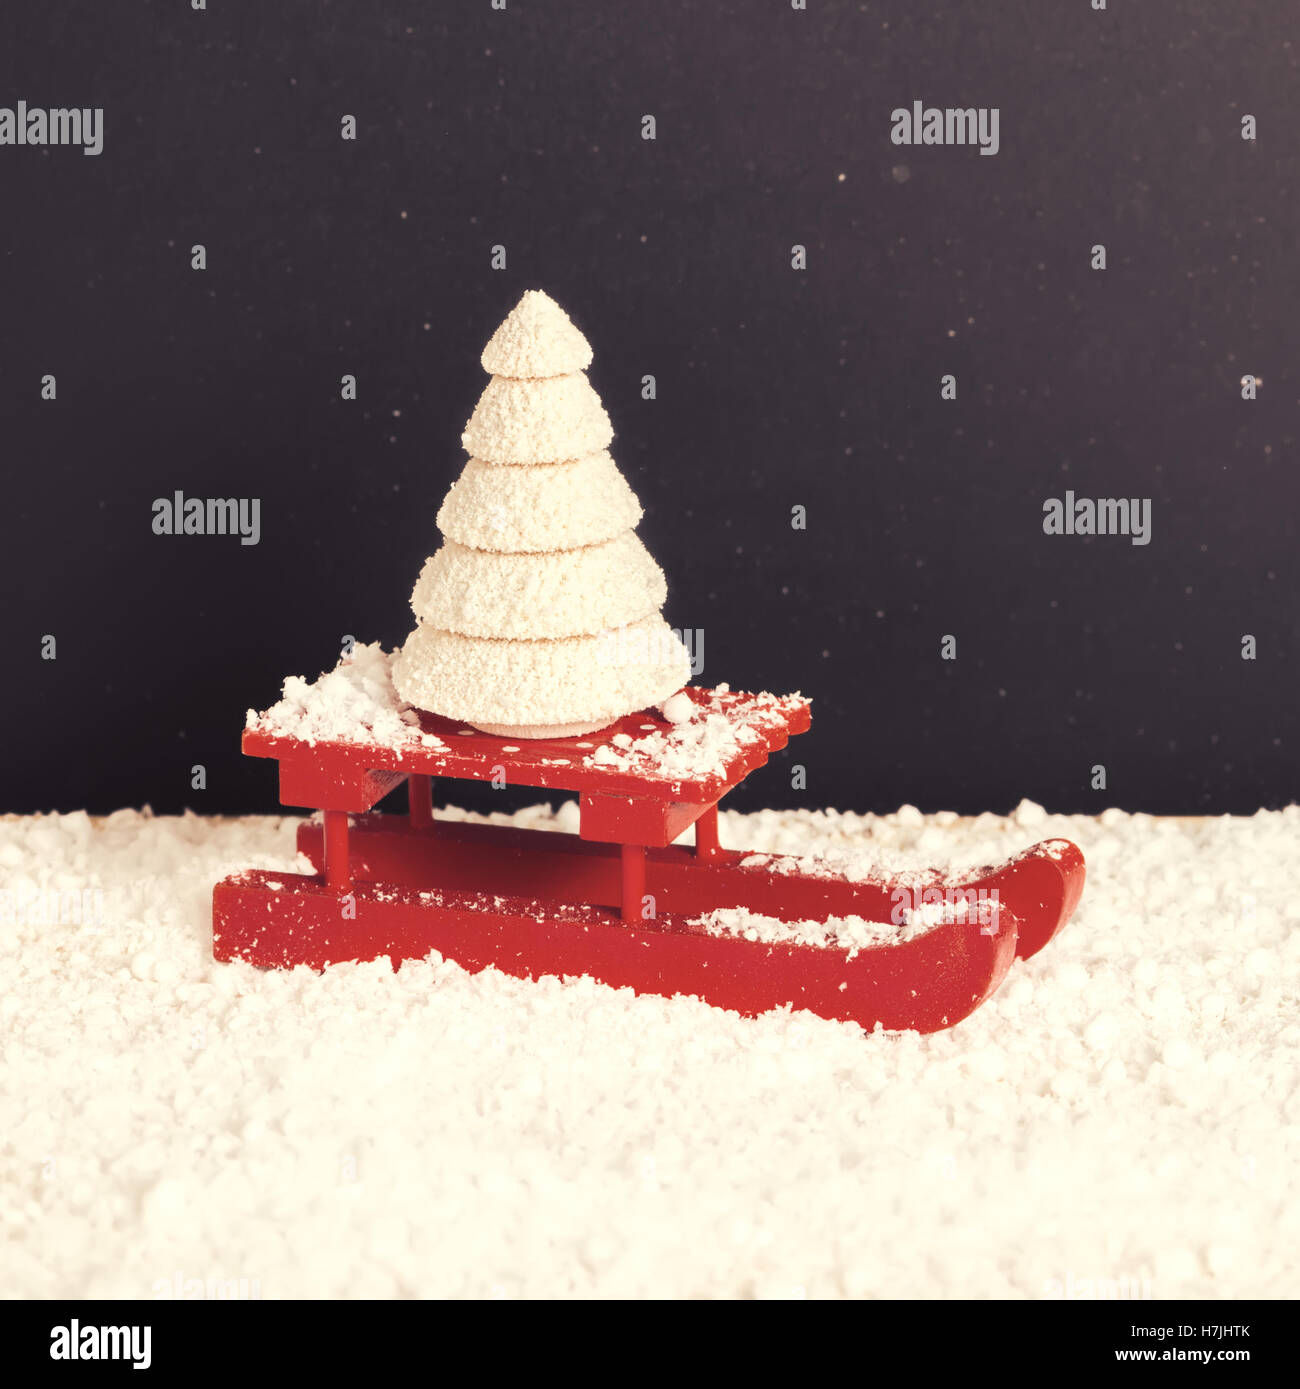 Red festive sled with spruce tree in snow on chalkboard background red festive sled with spruce tree in snow on chalkboard background christmas or new year celebrating symbols close up biocorpaavc Image collections